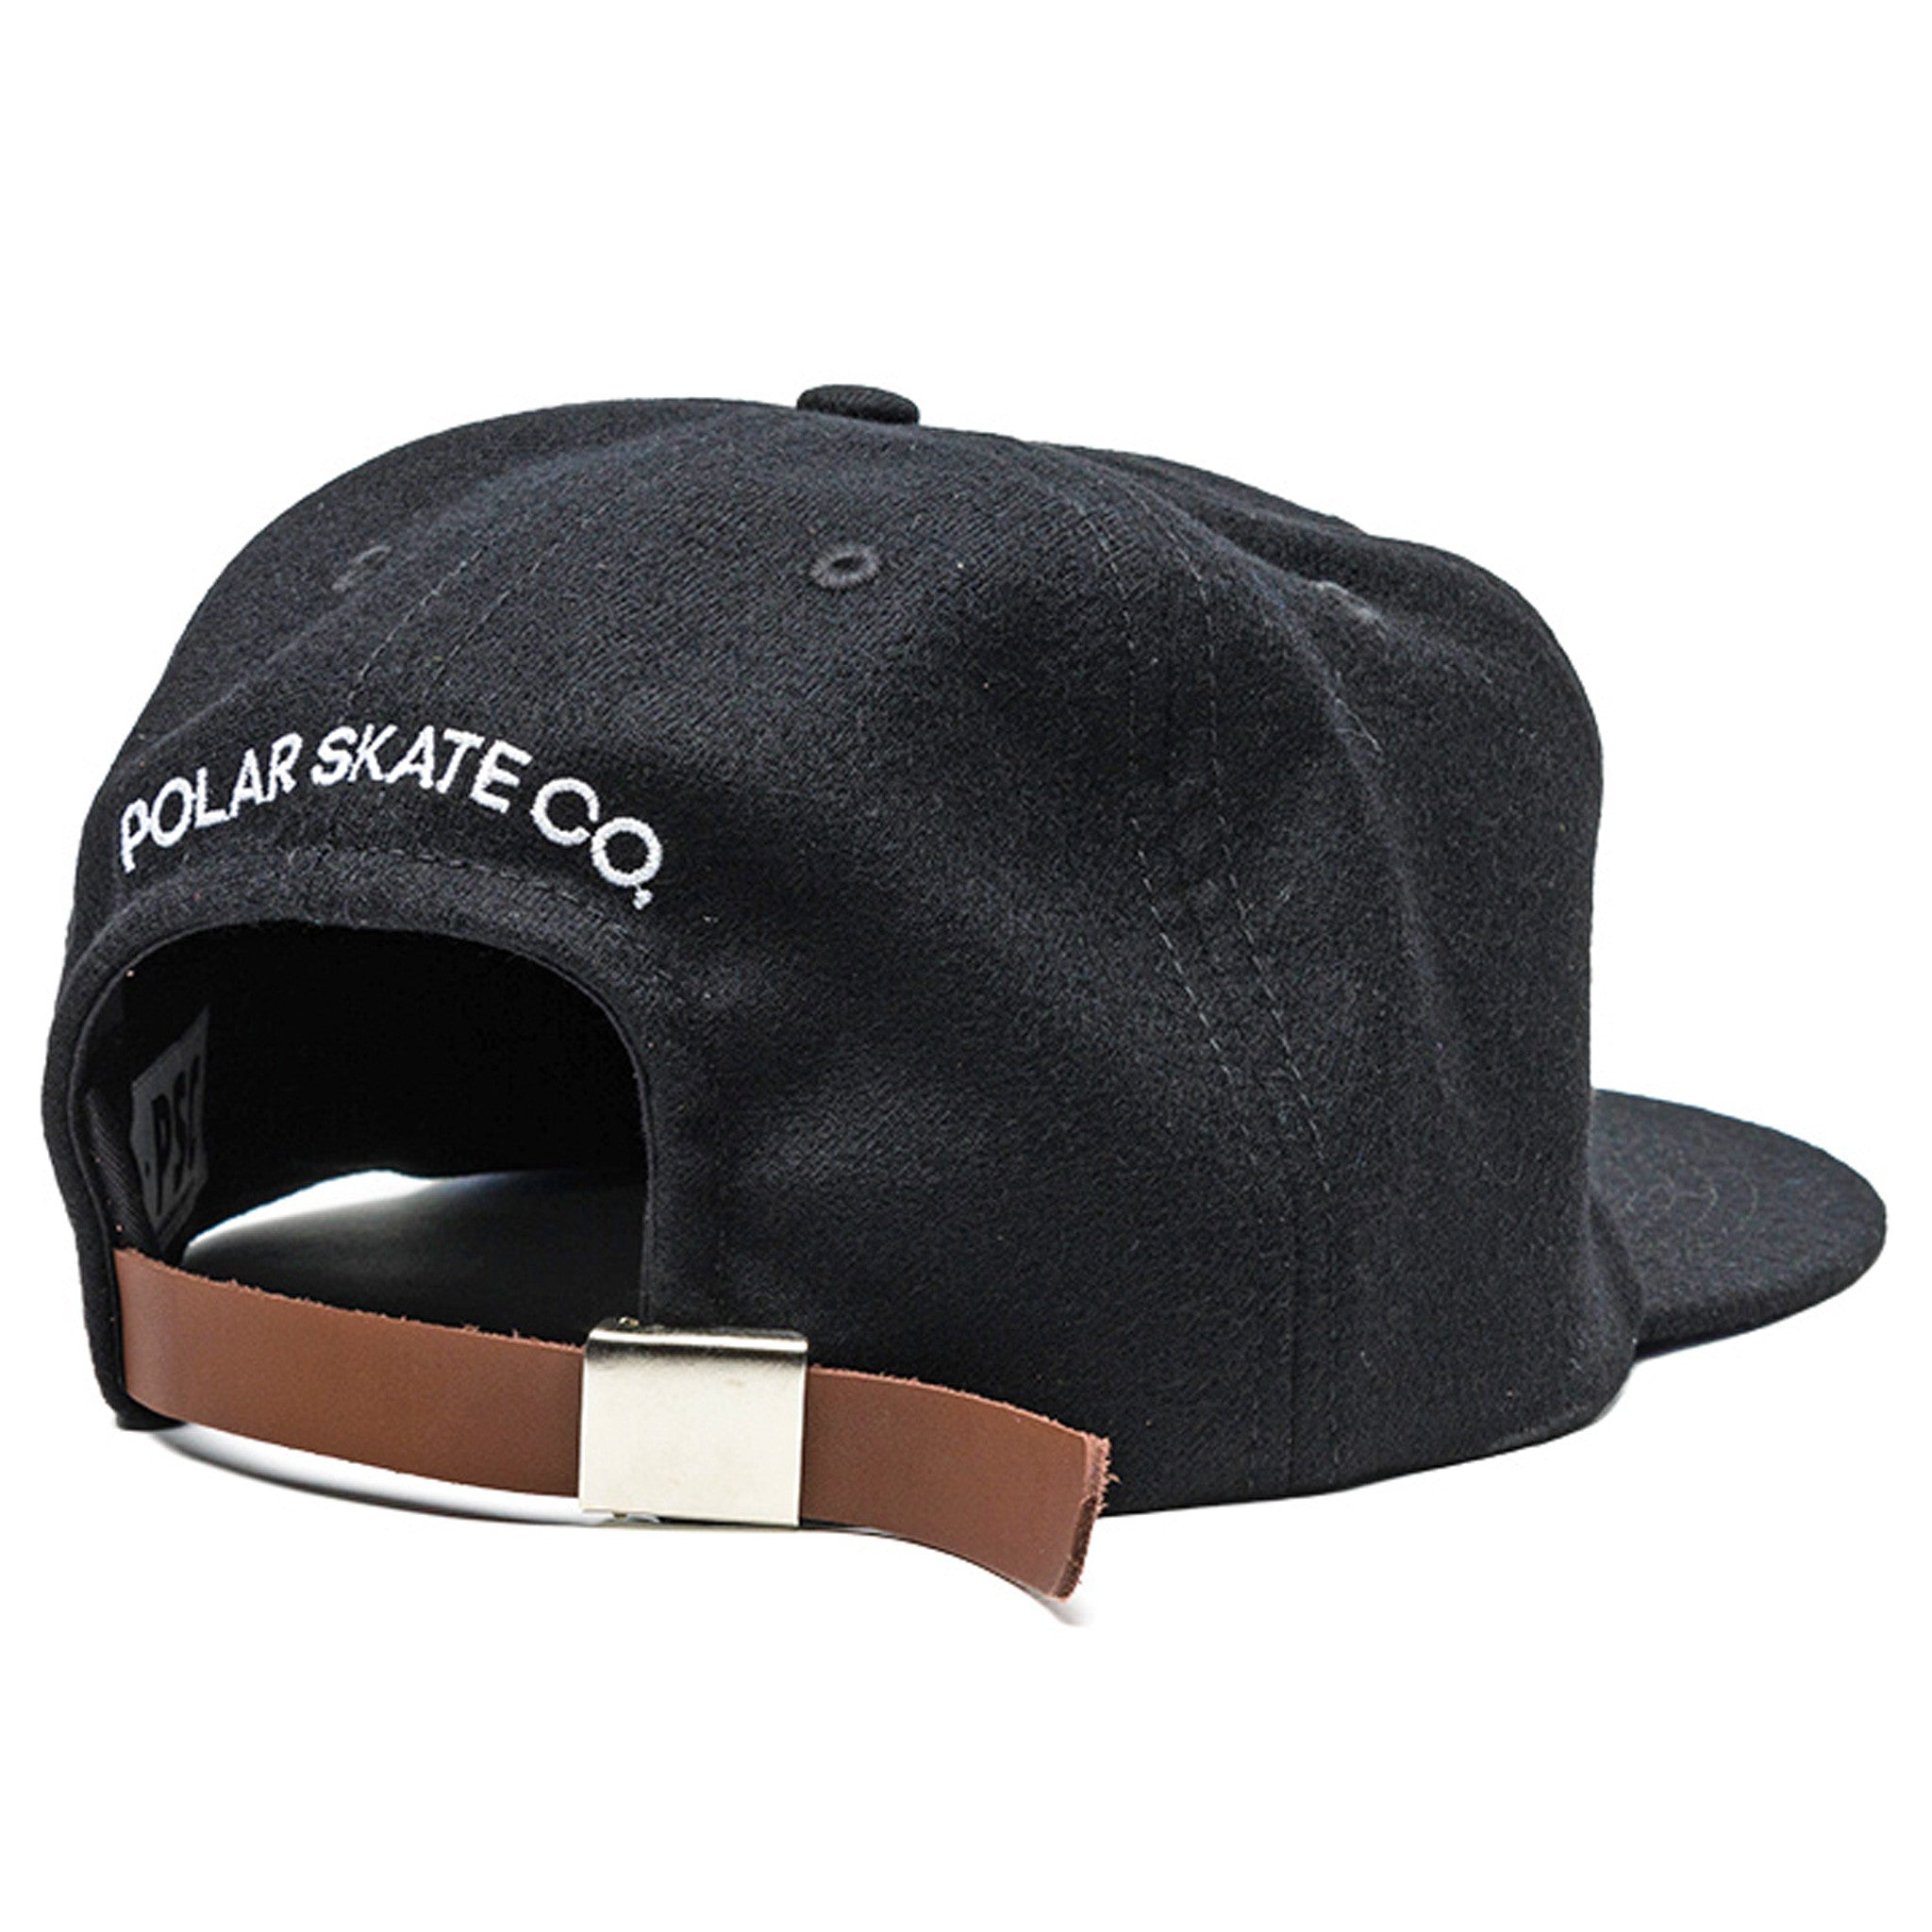 PSC Light Wool Leather Buckle 6-Panel Cap Black/Blue - Stoked Boardshop  - 2